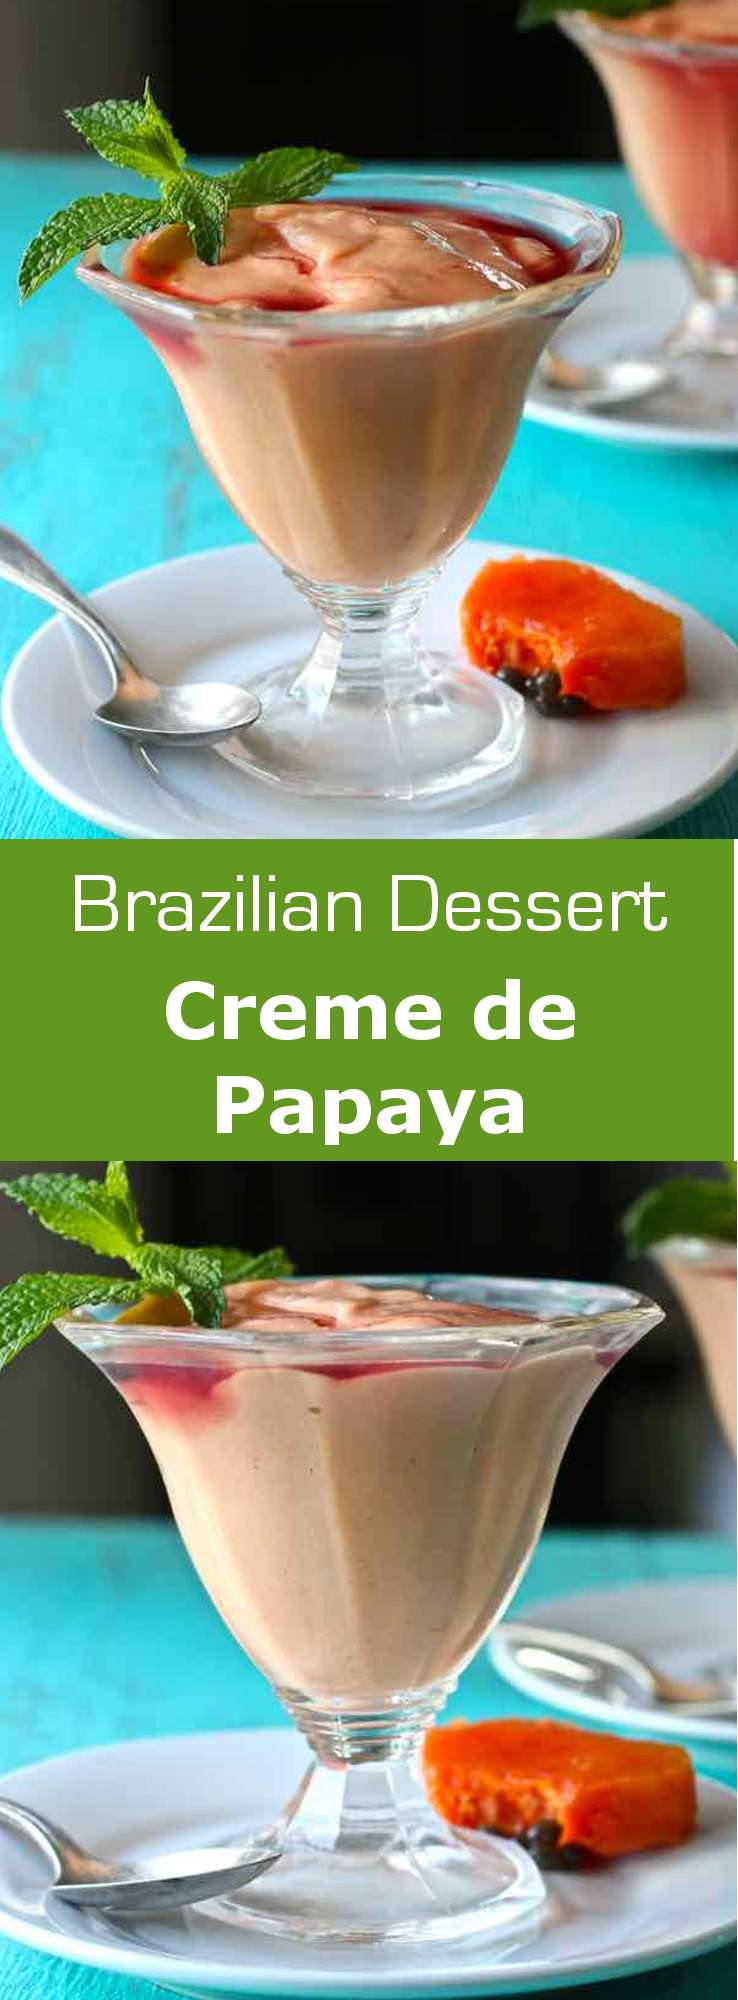 Creme de papaya is a very easy to make luscious Brazilian dessert that consists of papaya blended with vanilla ice cream and topped with creme de cassis. #dessert #brazil #WorldCuisine #196flavors